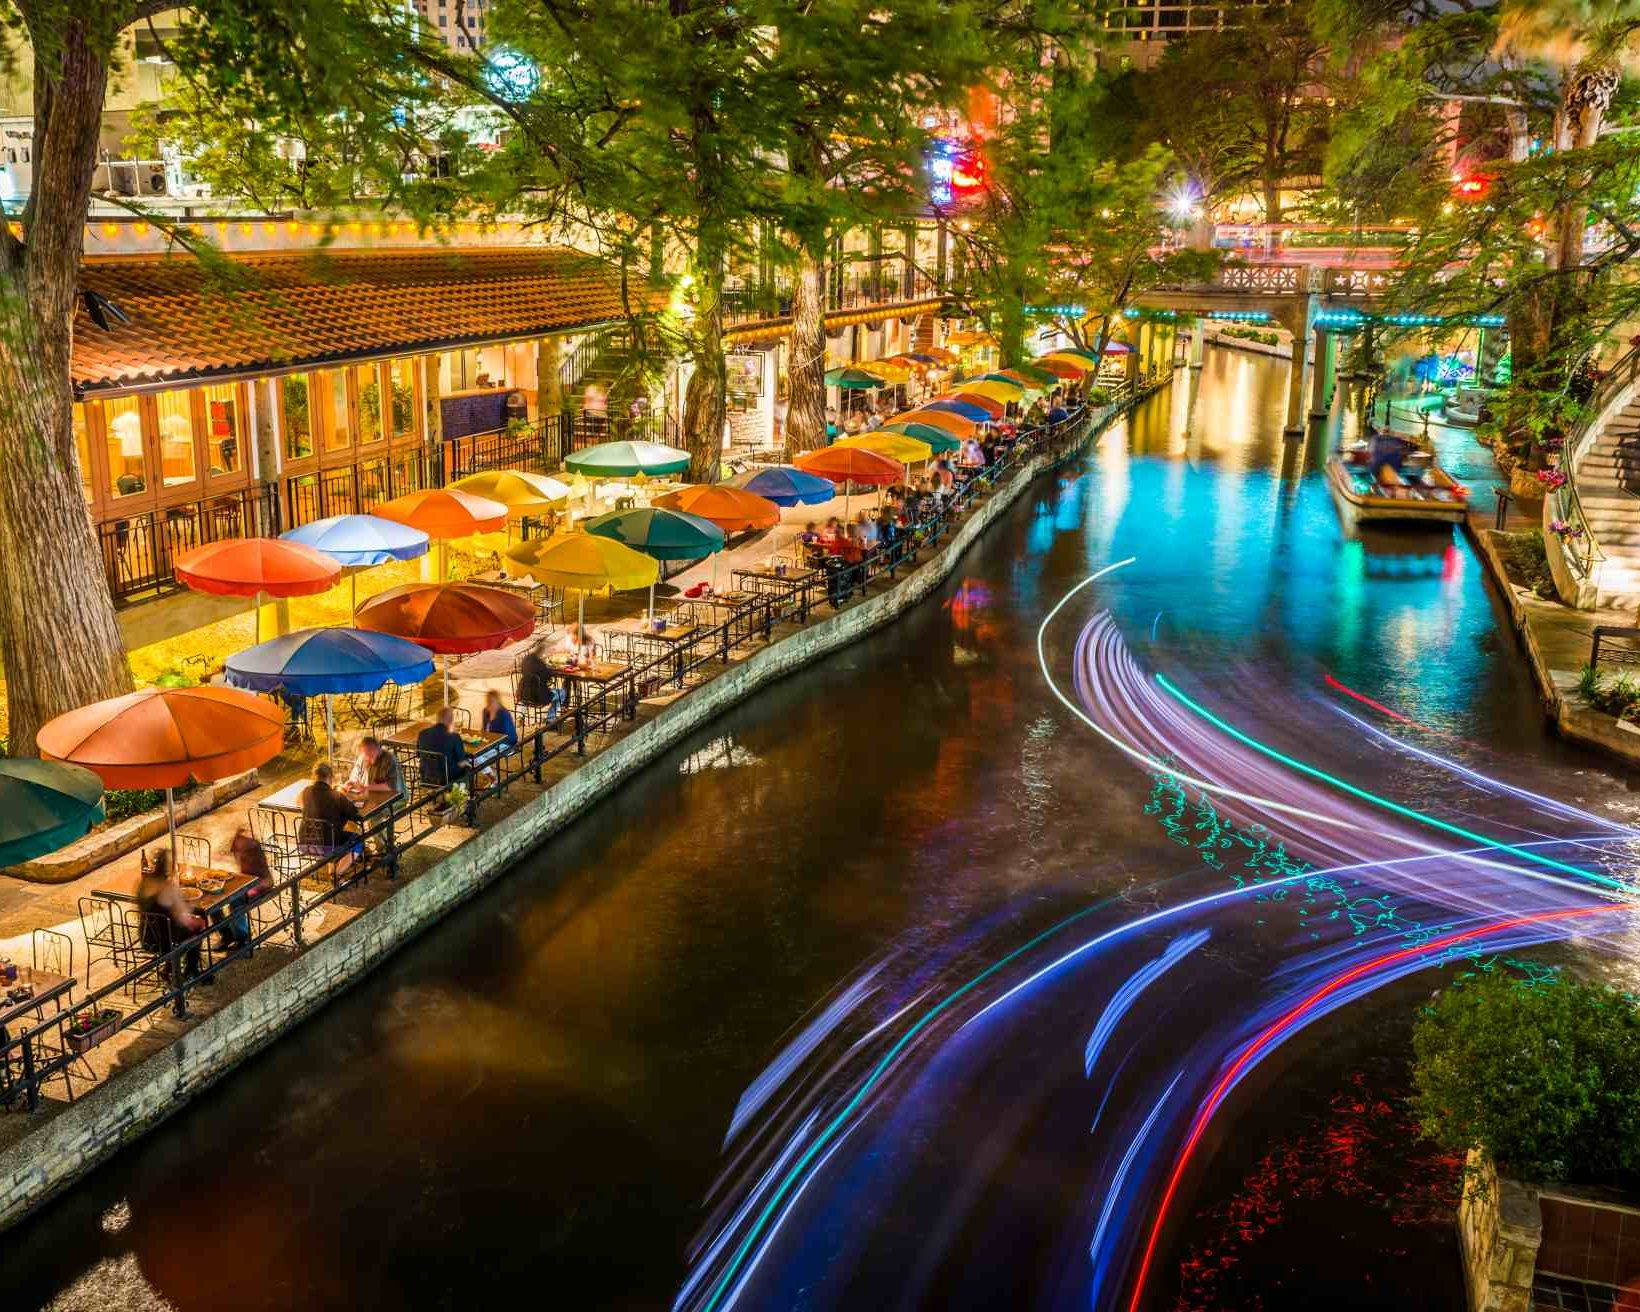 San Antonio Riverwalk, Texas, scenic river canal tourism umbrellas night